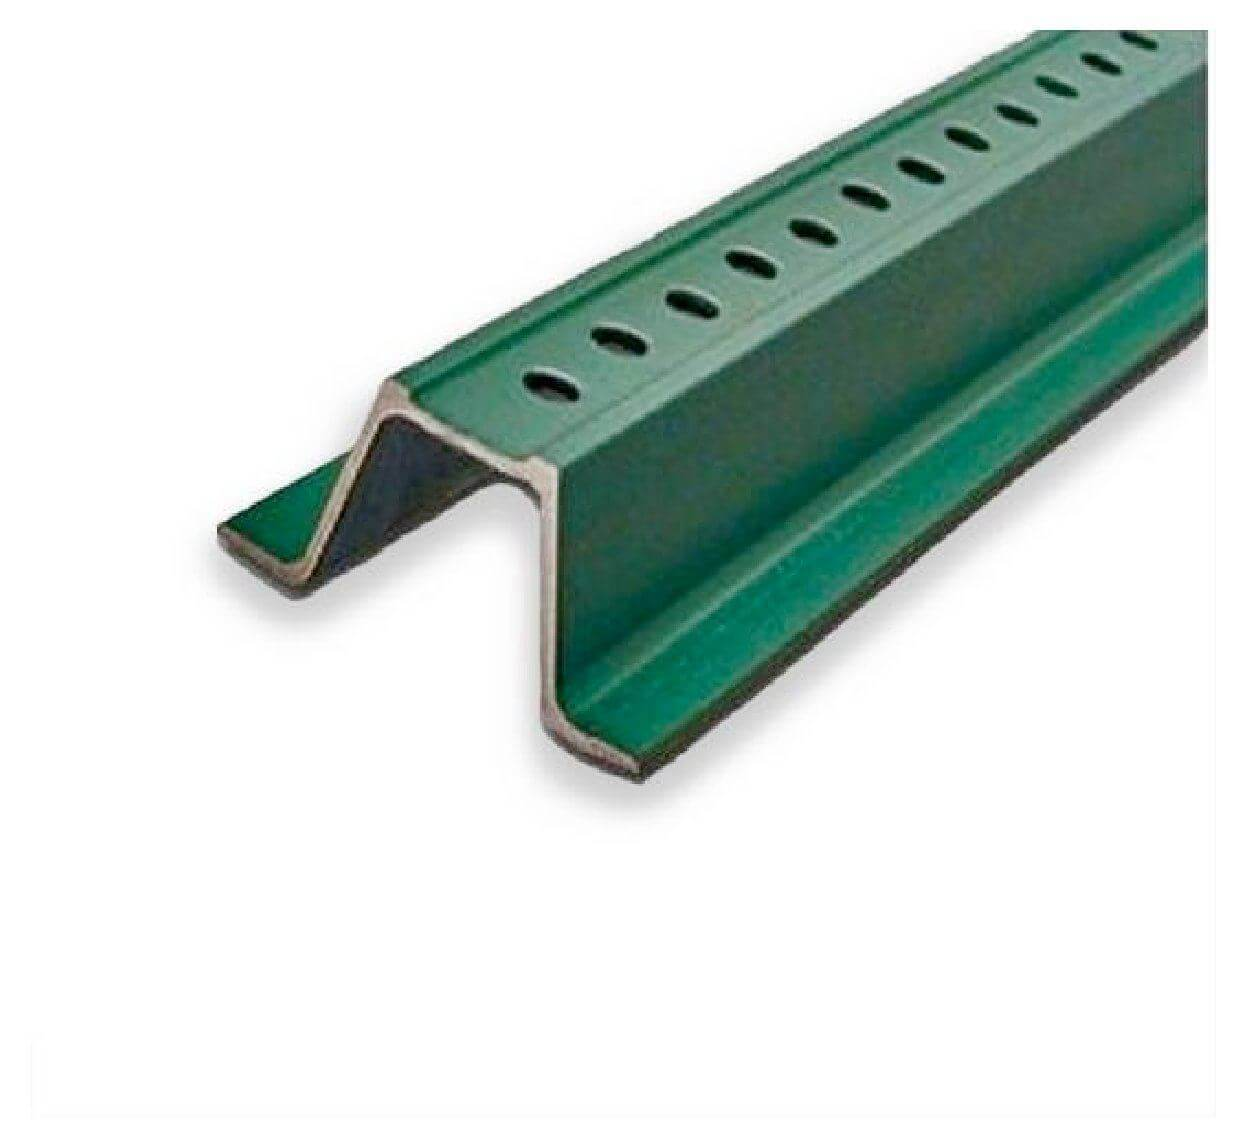 8' U-Channel (Green)